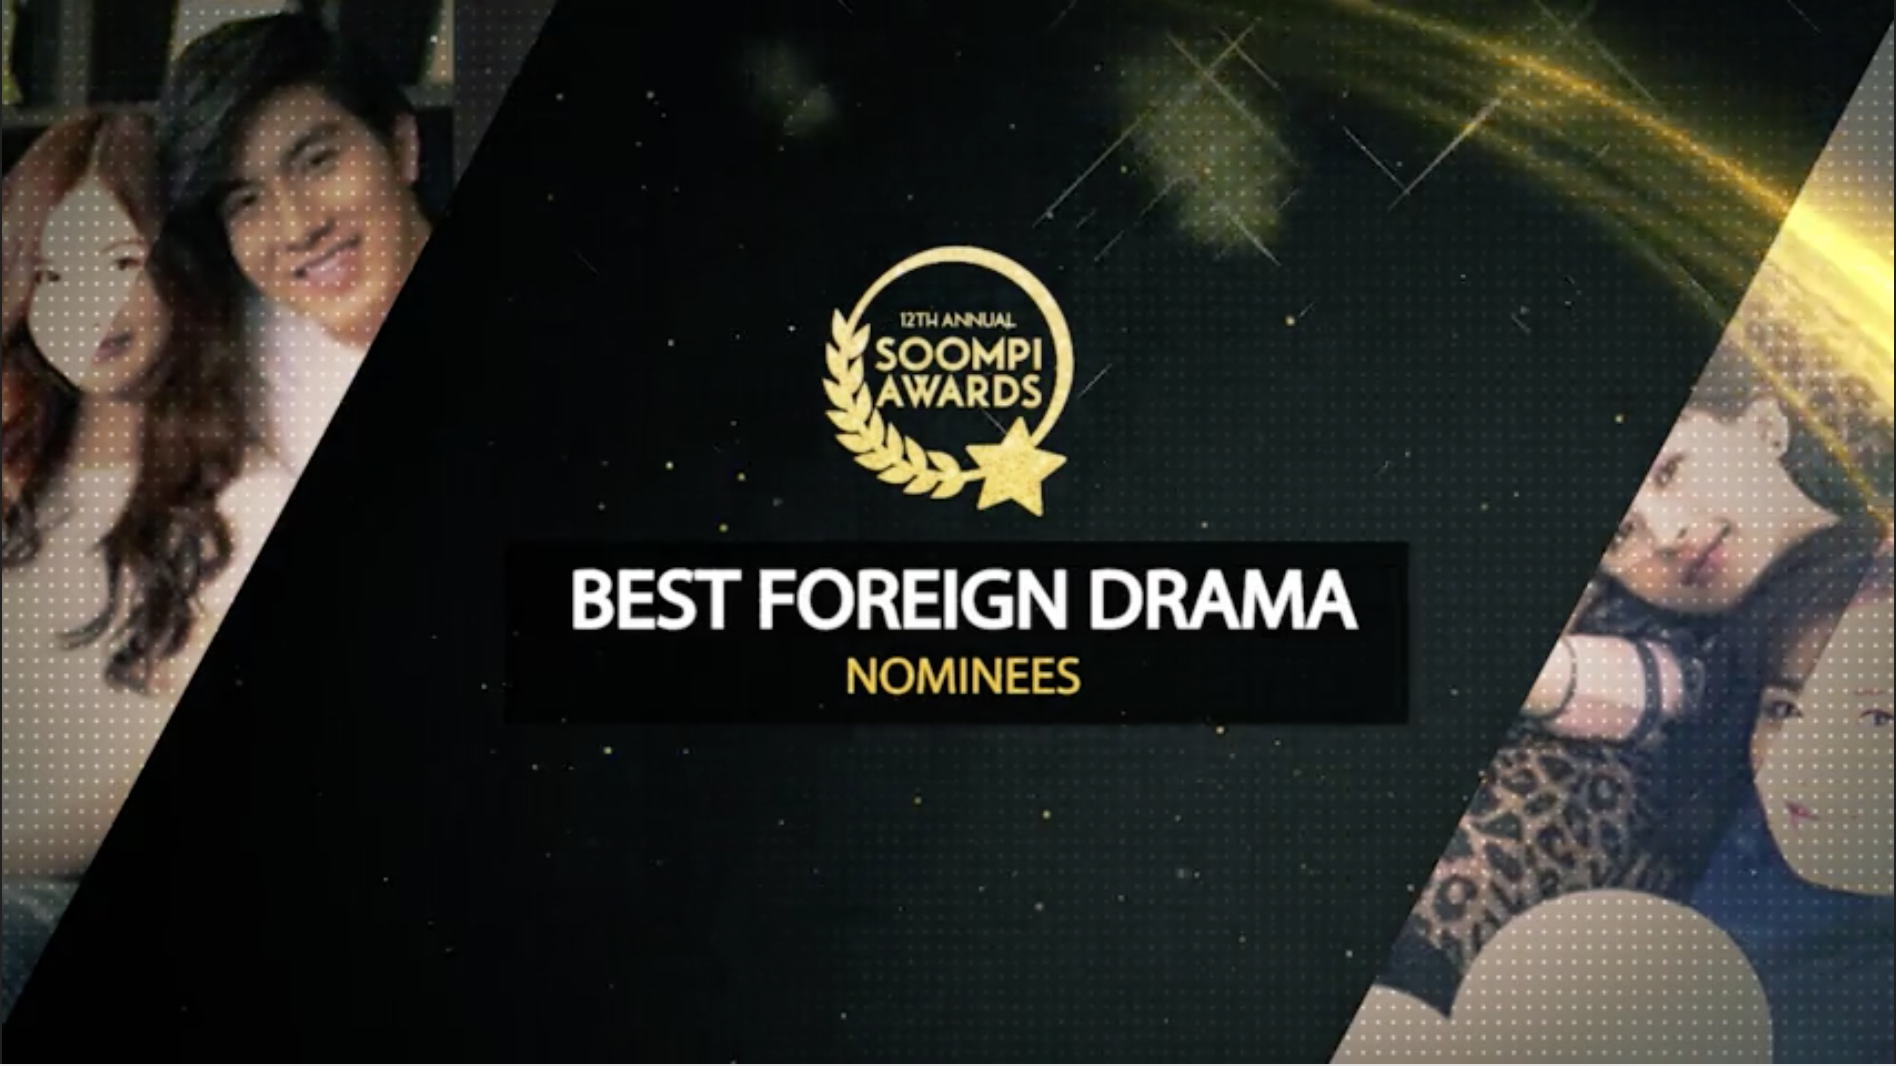 Soompi Awards Episode 4: Best Foreign Drama